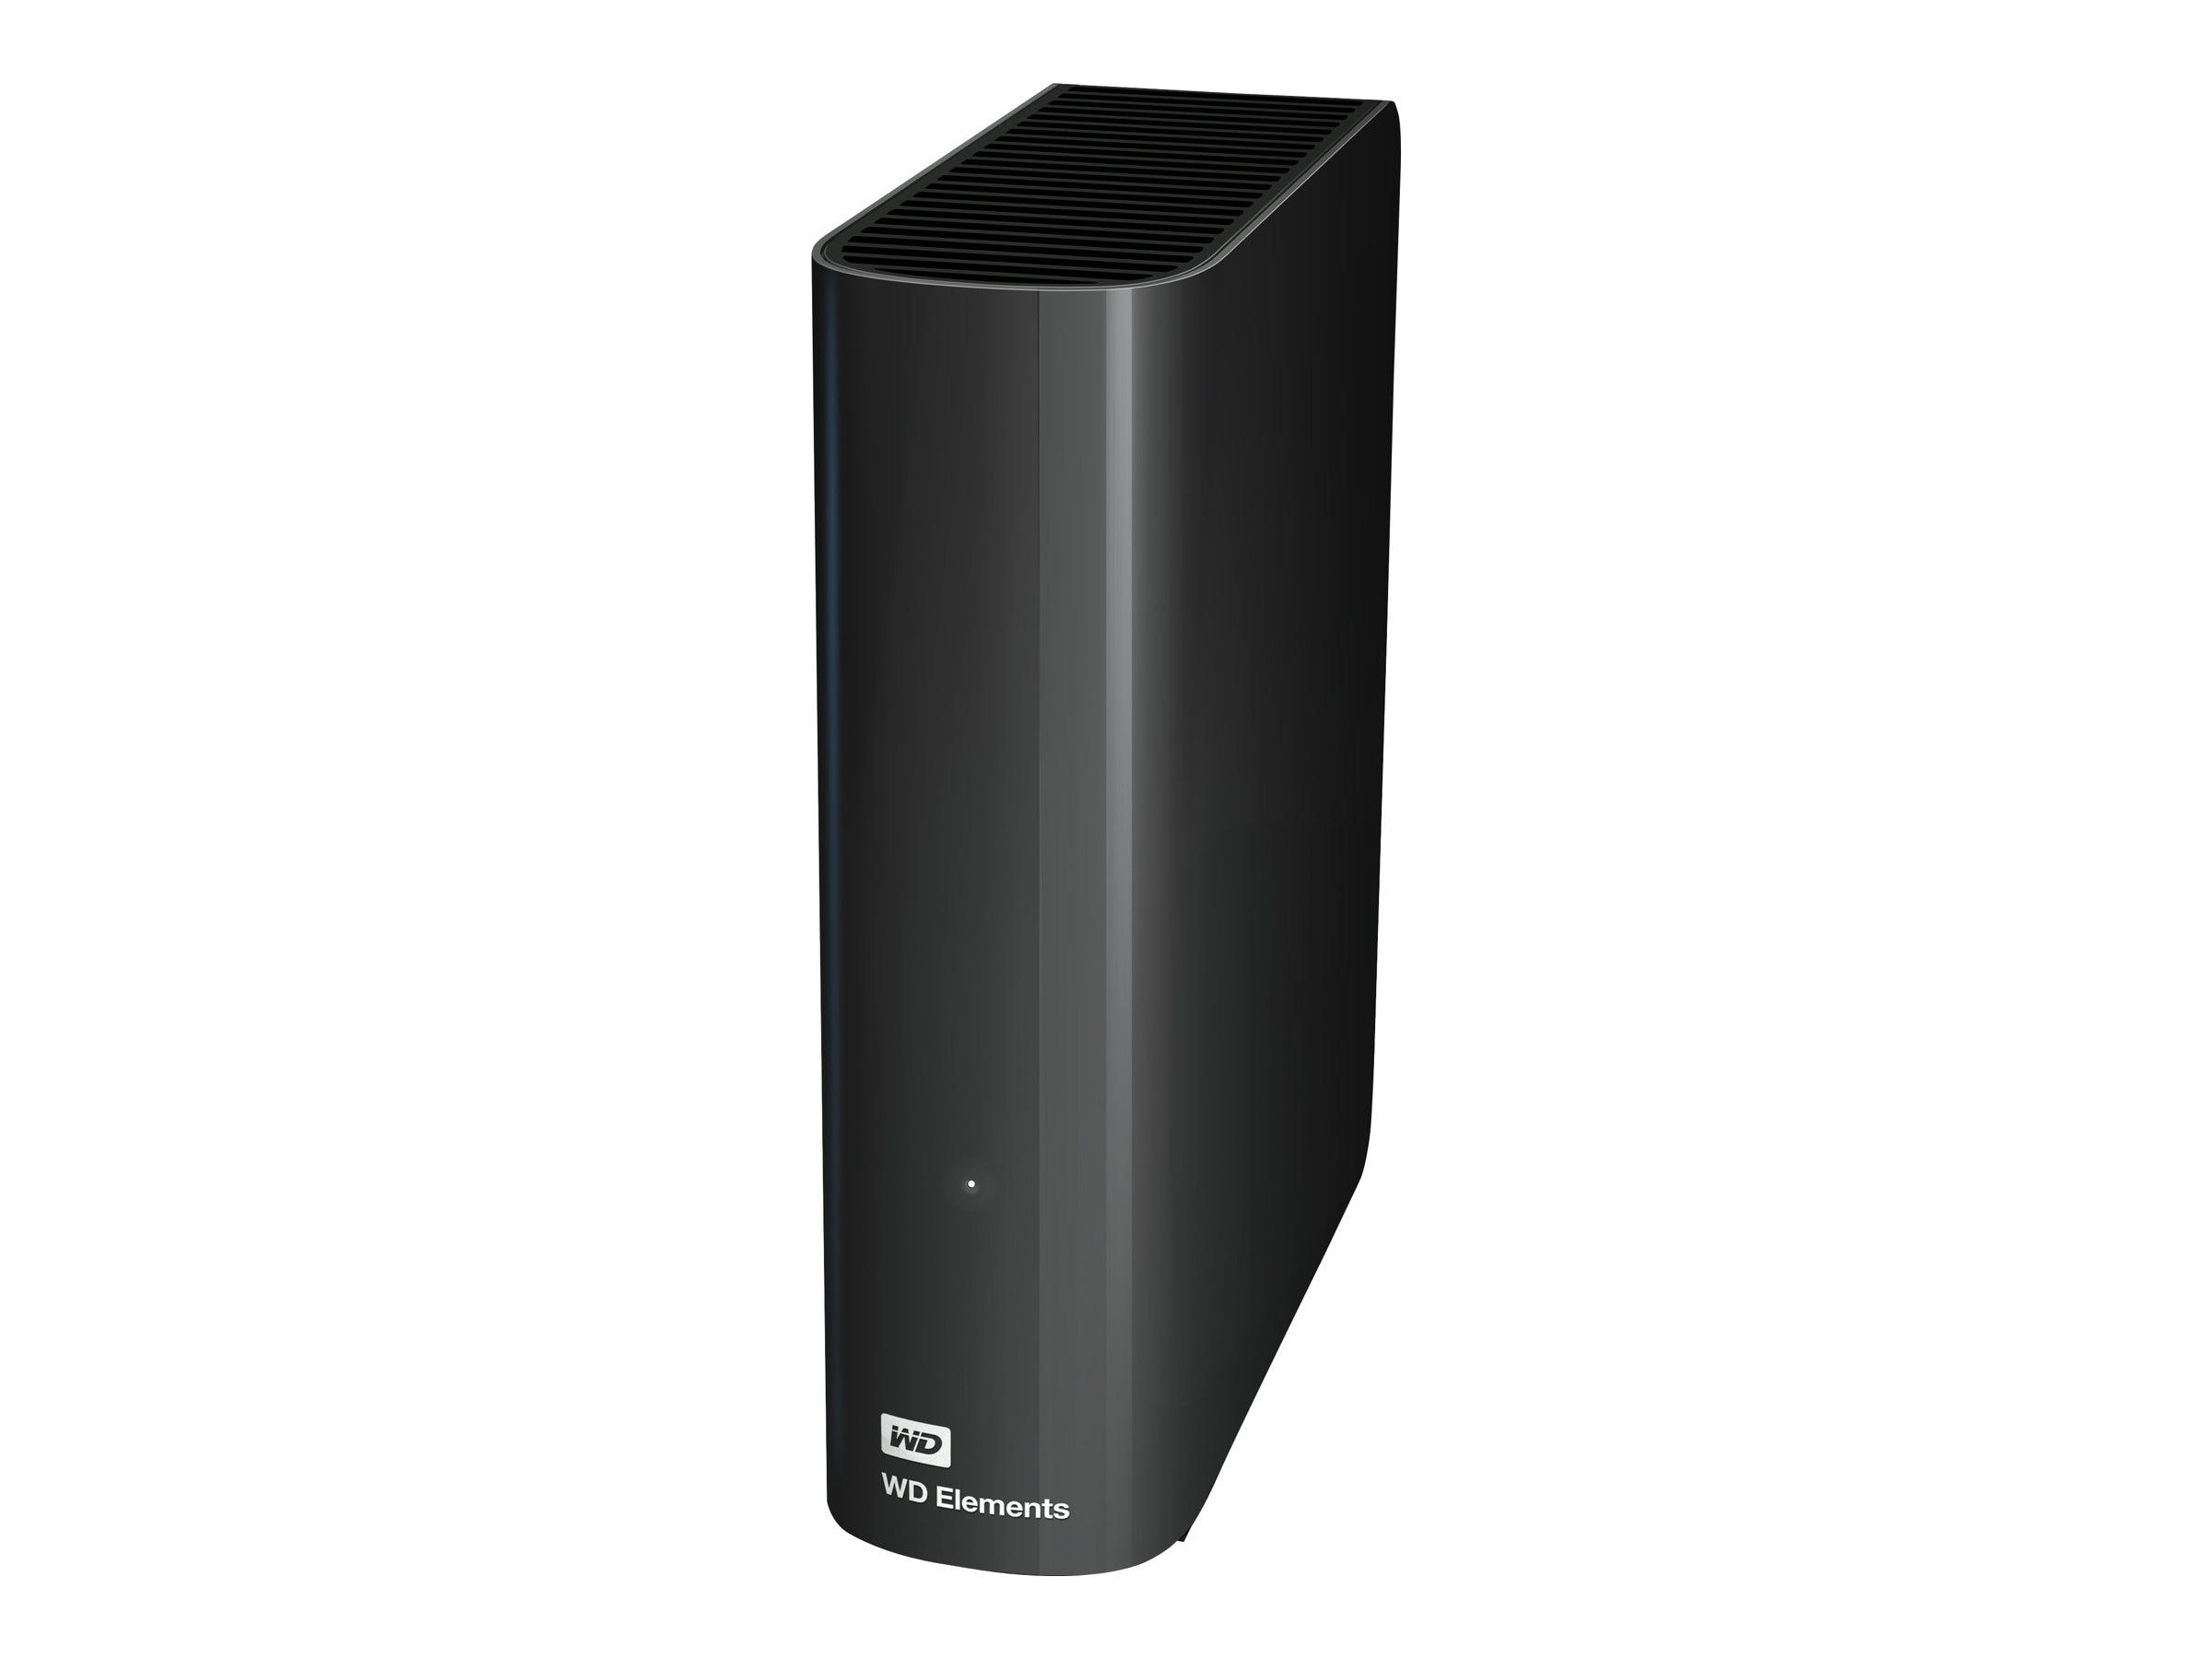 WD 5TB Elements Desktop USB 3.0 External Hard Drive, WDBWLG0050HBK-NESN, 17714624, Hard Drives - External